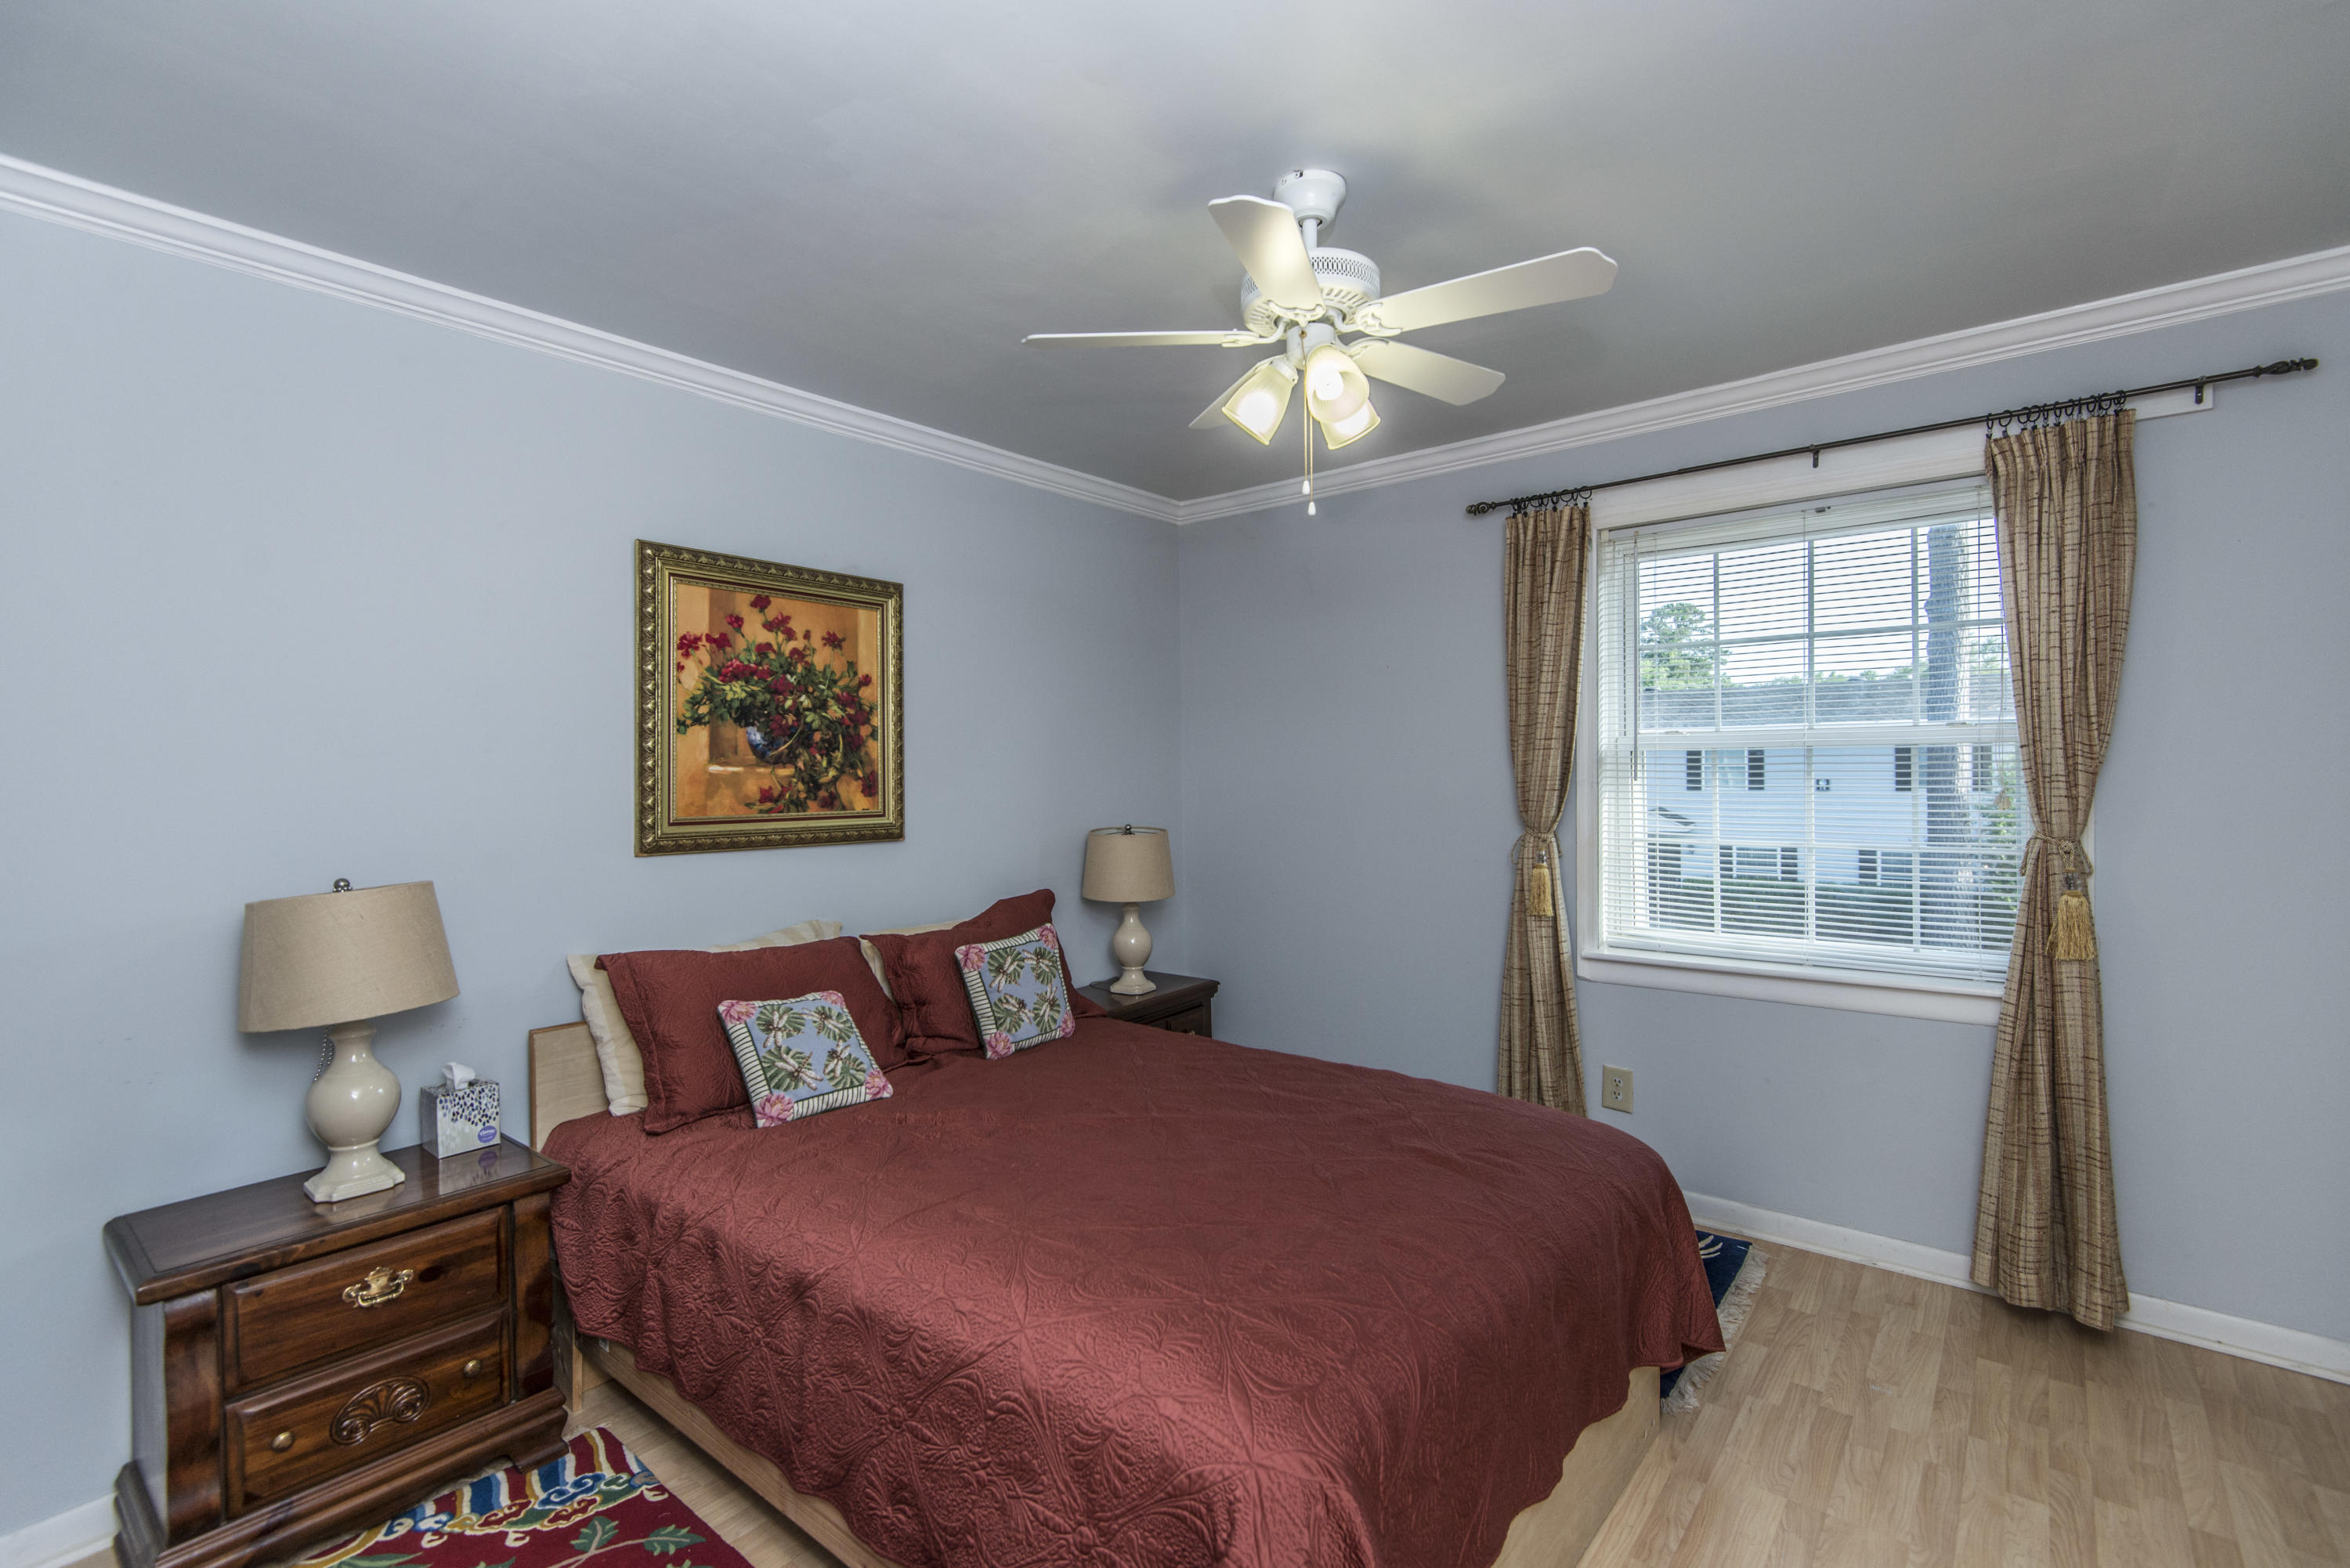 Rivers Point Row Homes For Sale - 21 Rivers Point Row, Charleston, SC - 21